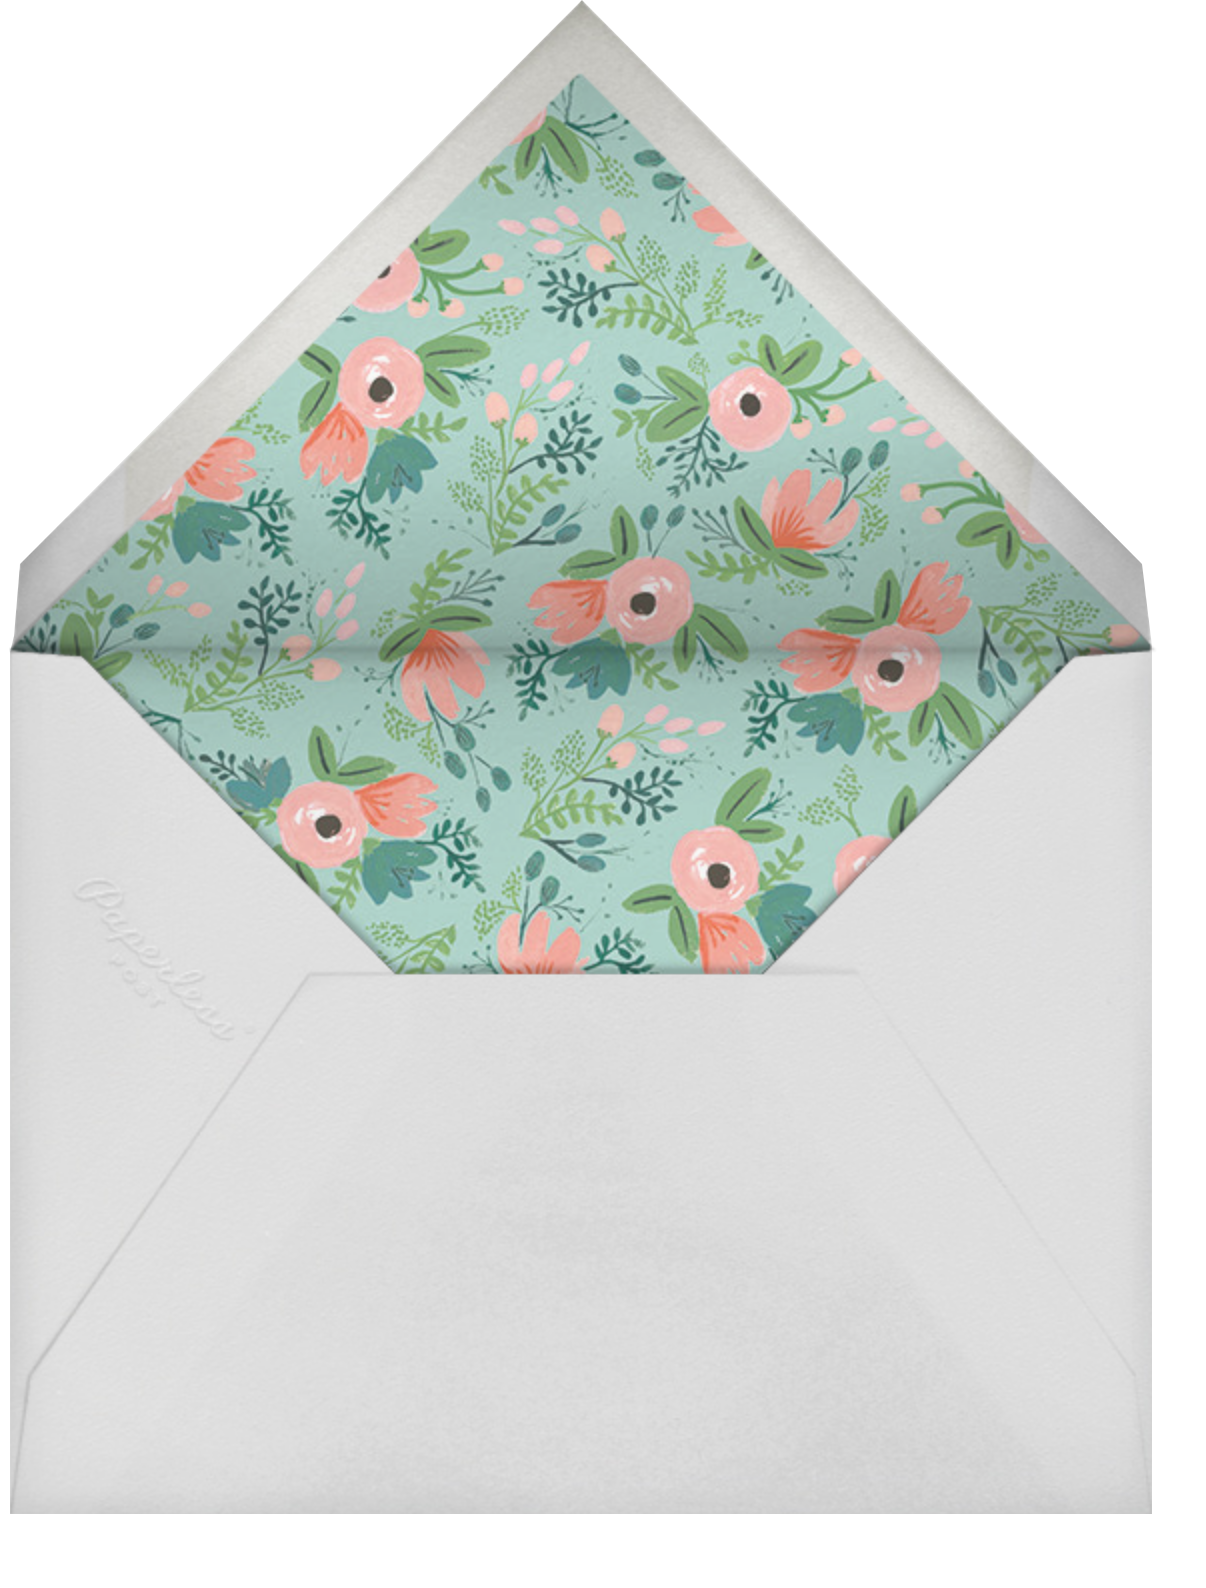 One Blooming Birthday - White - Rifle Paper Co. - 1st birthday - envelope back